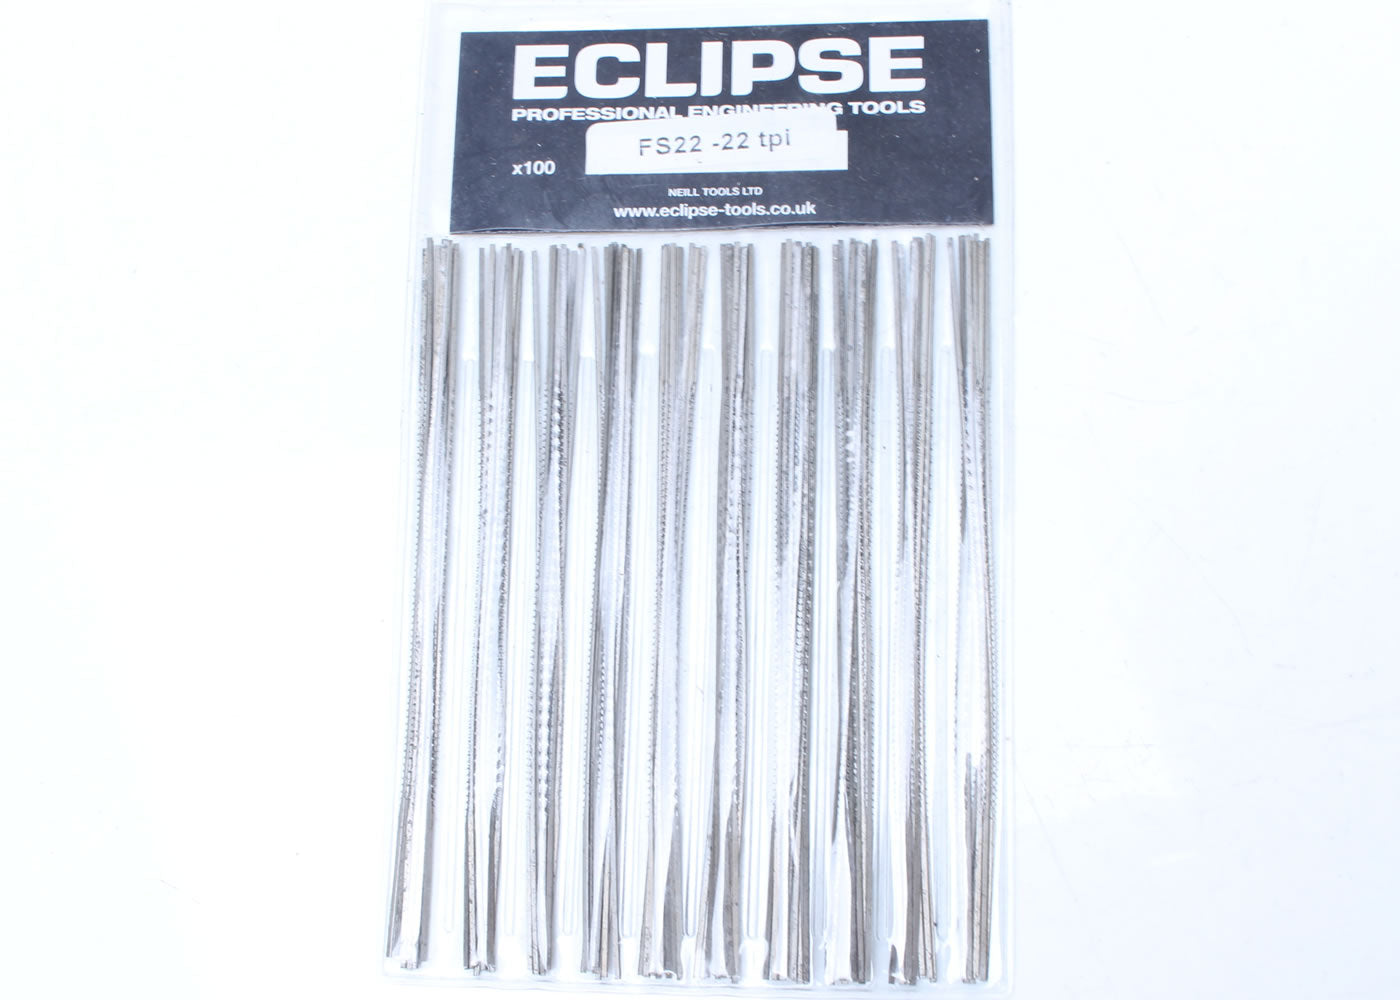 Eclipse Fret Saw Blades - (Quantity 100)